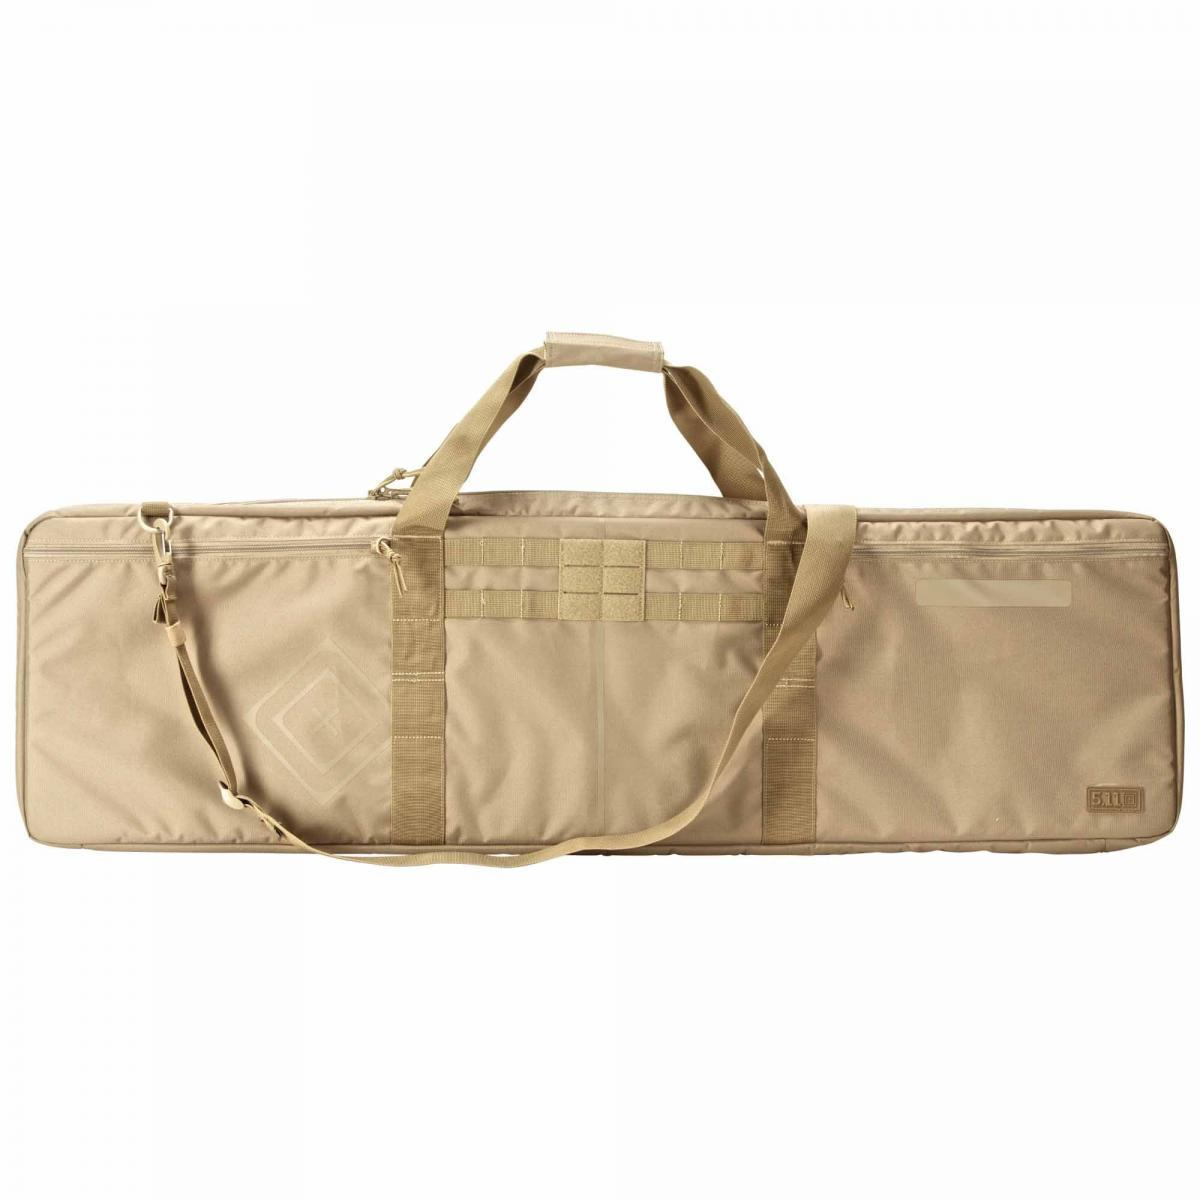 "Чехол для M4 42"" SHOCK RIFLE CASE"